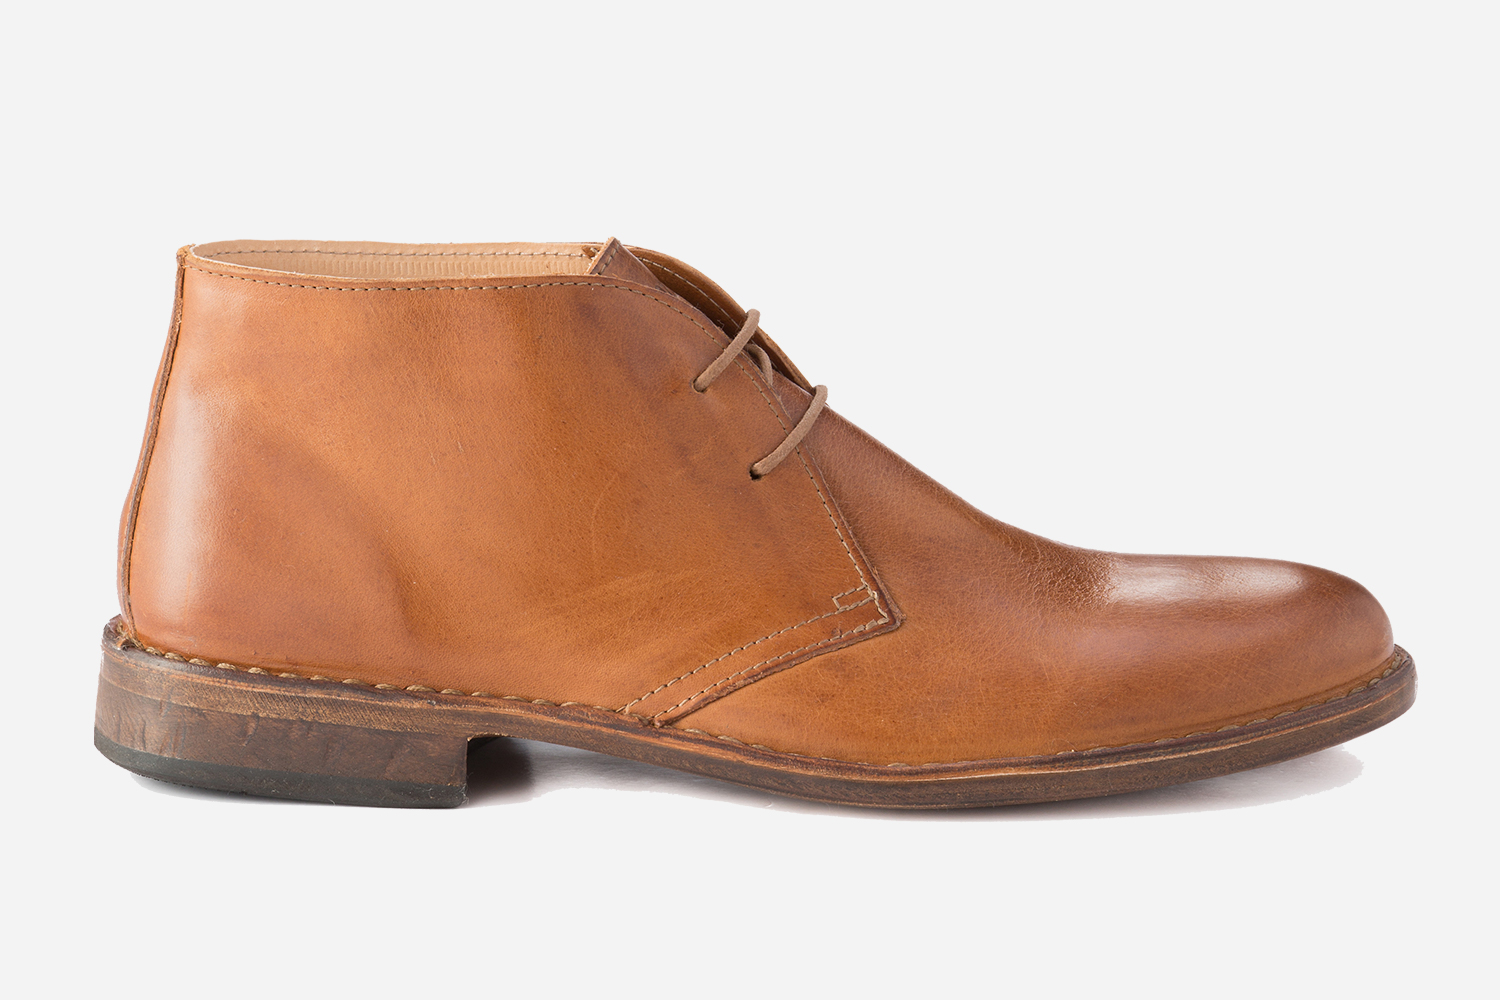 Huckberry Exclusive Greenflex Desert Boots on Sale